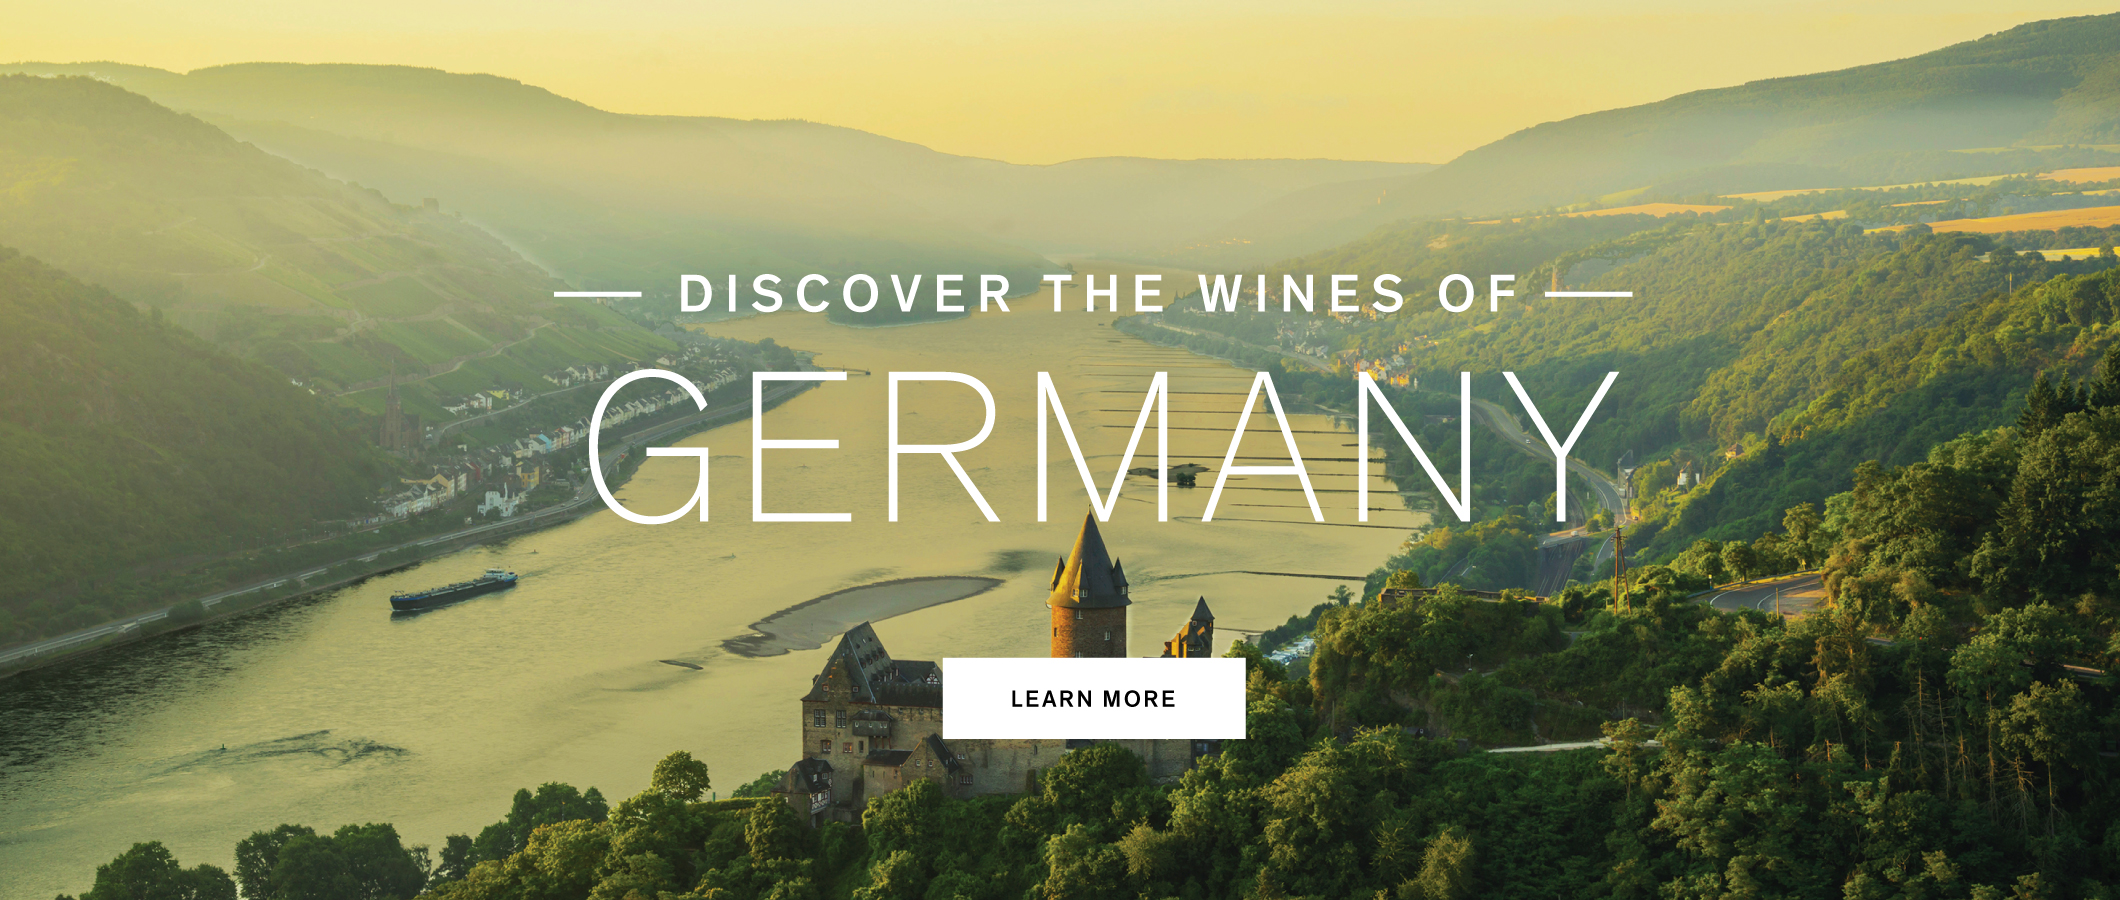 Discover the wines of Germany. Learn More